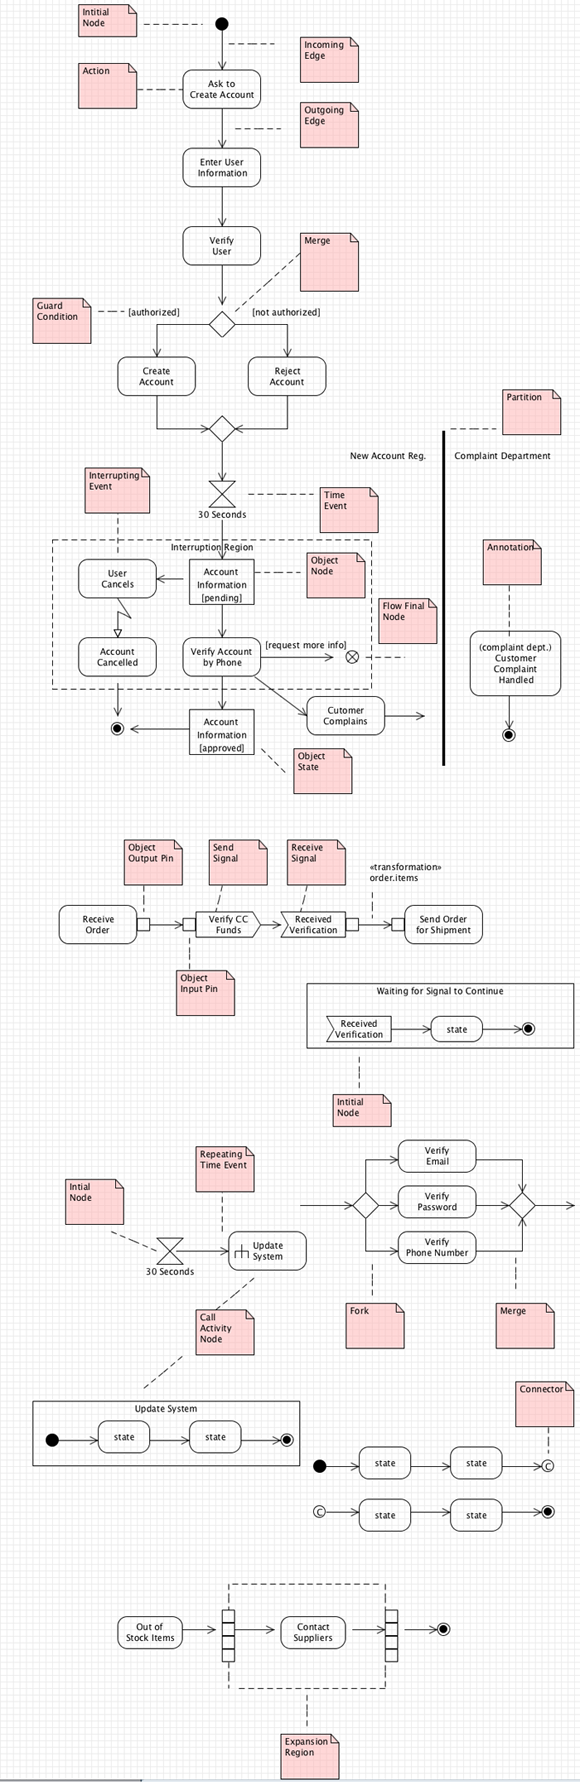 Uml activity diagramg 5801786 uml activity diagram uml 2 0 activity diagrams 28 images uml 2 0 activity diagram definition rtb team realtimebattle team framework figure 2 sequence diagram showing the ccuart Image collections